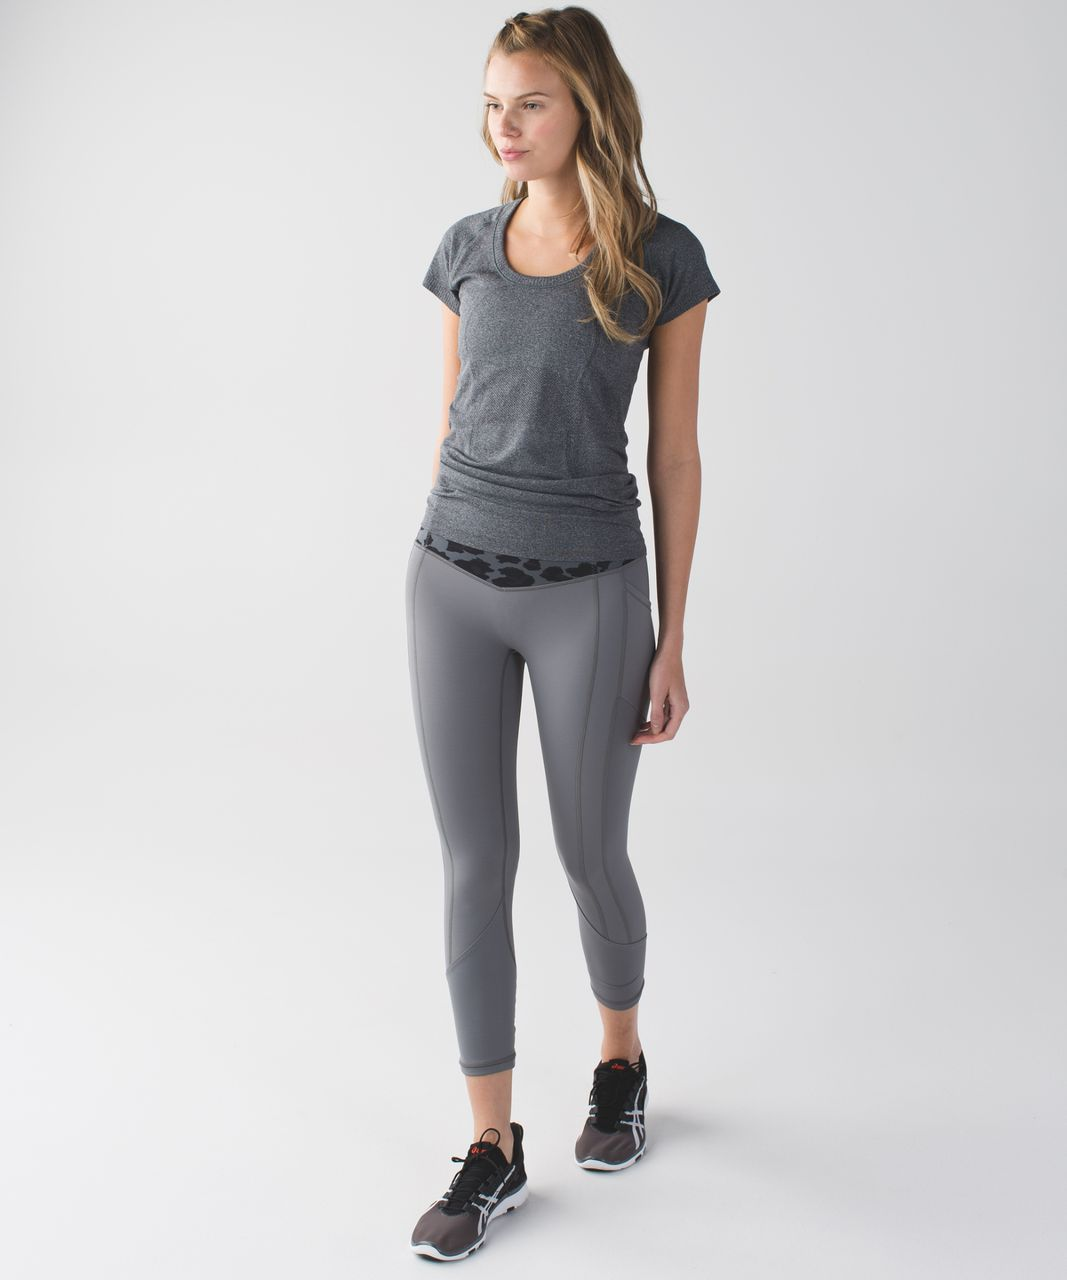 Lululemon All The Right Places Crop - Slate